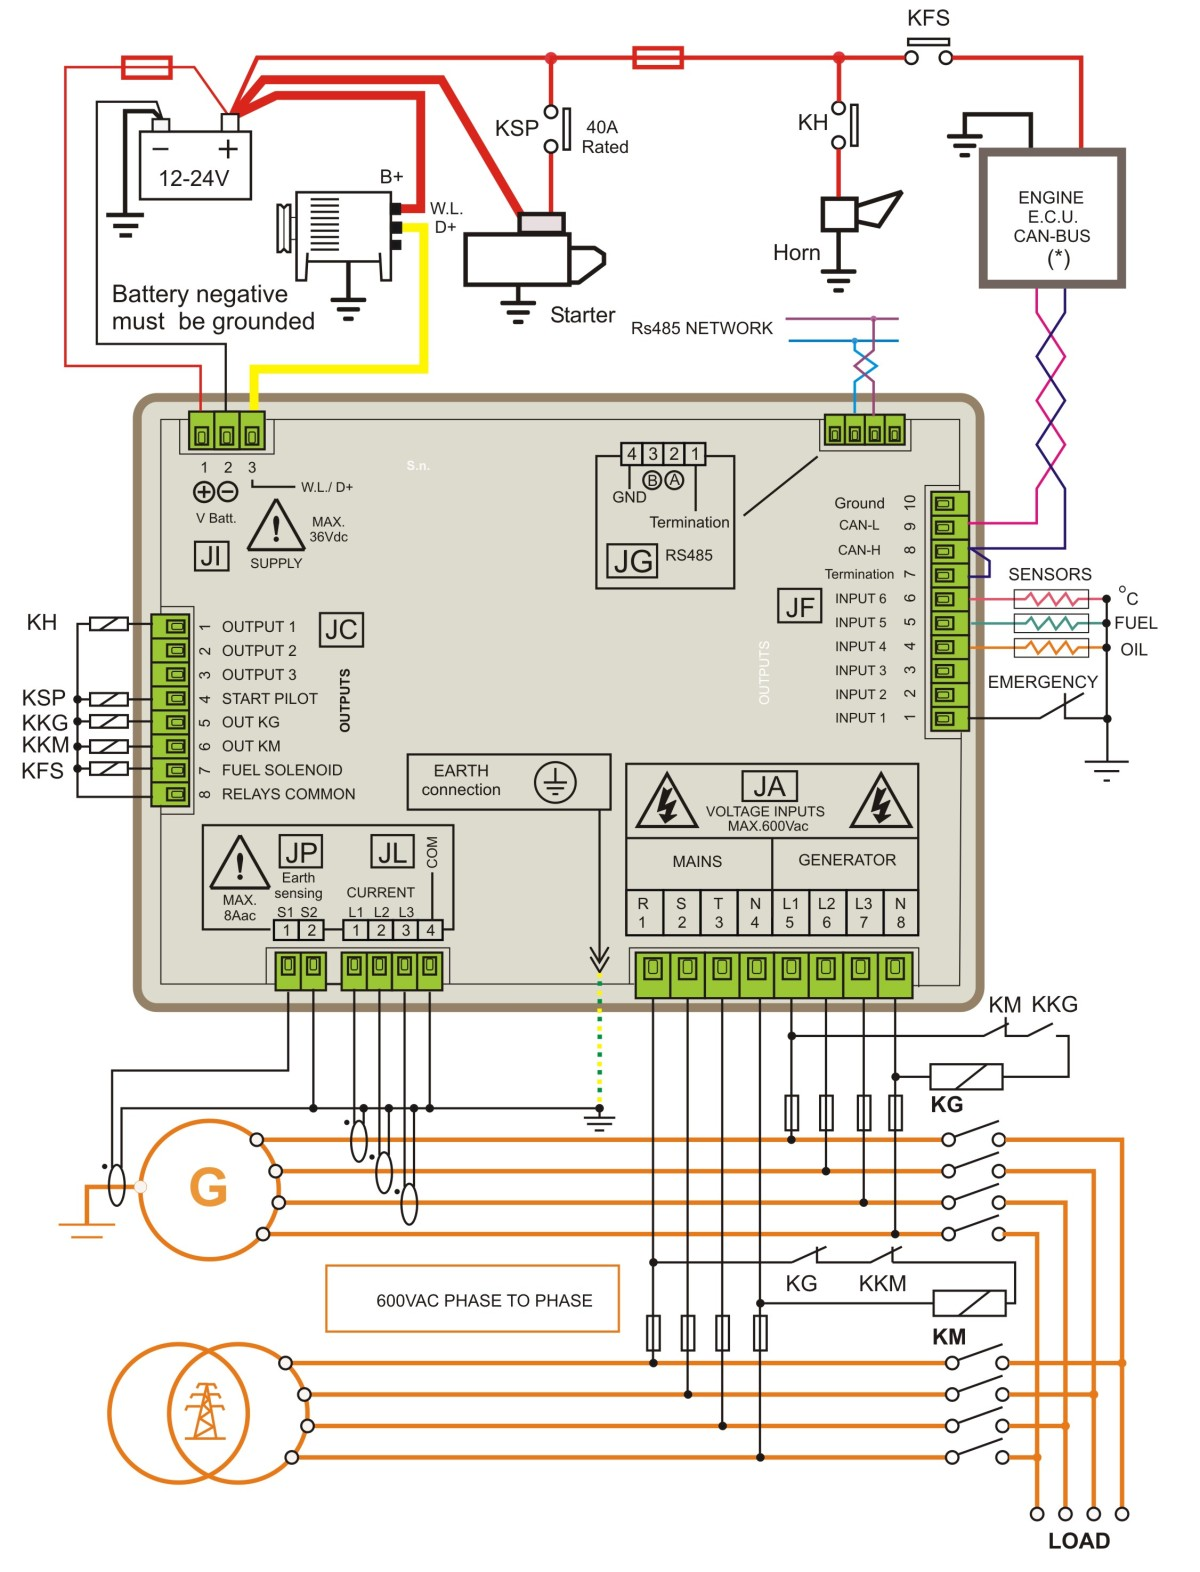 Diesel Generator Control Panel Wiring Diagram BeK3 e1450881313642 aggreko generator wiring diagram aggreko generator specifications aggreko generator wiring diagram at panicattacktreatment.co